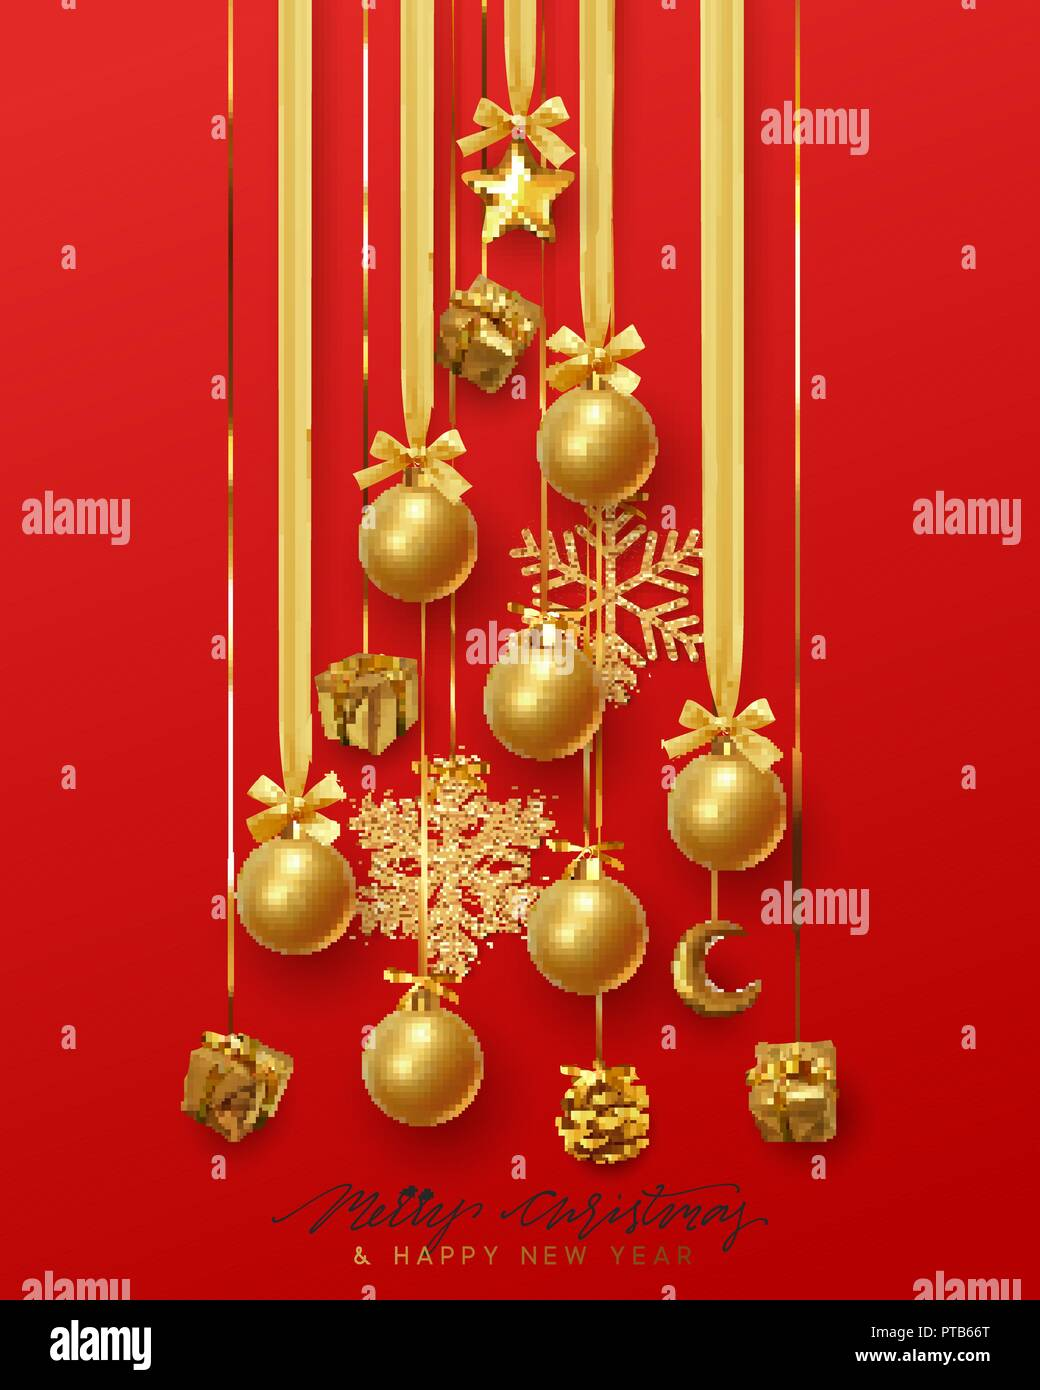 Christmas Background Greeting Cards Banner Poster Bright